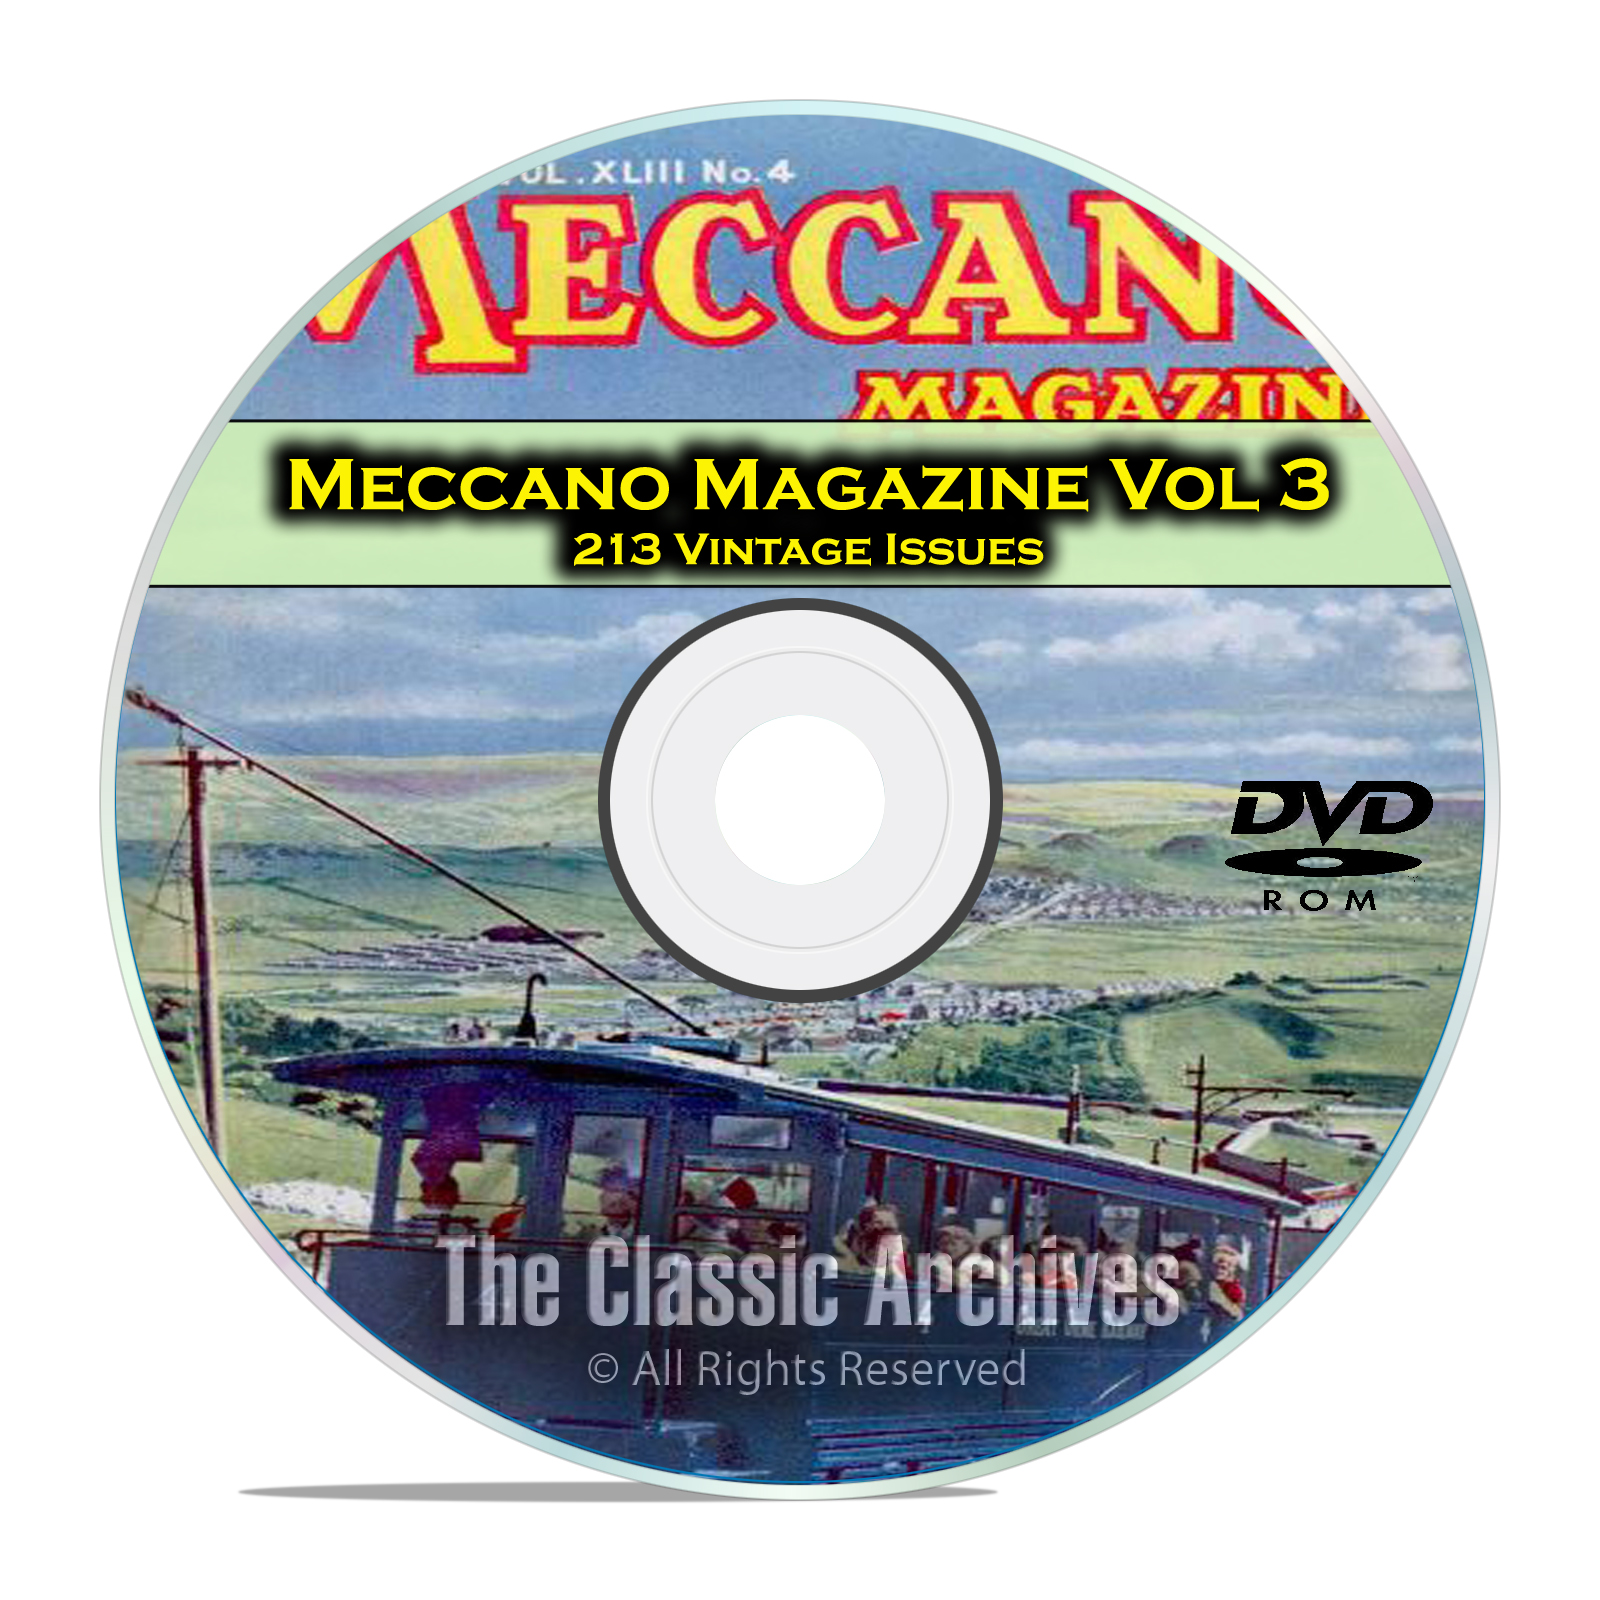 Meccano Magazine Volume 3, 213 Vintage Issues, Boy Hobby Magazine DVD